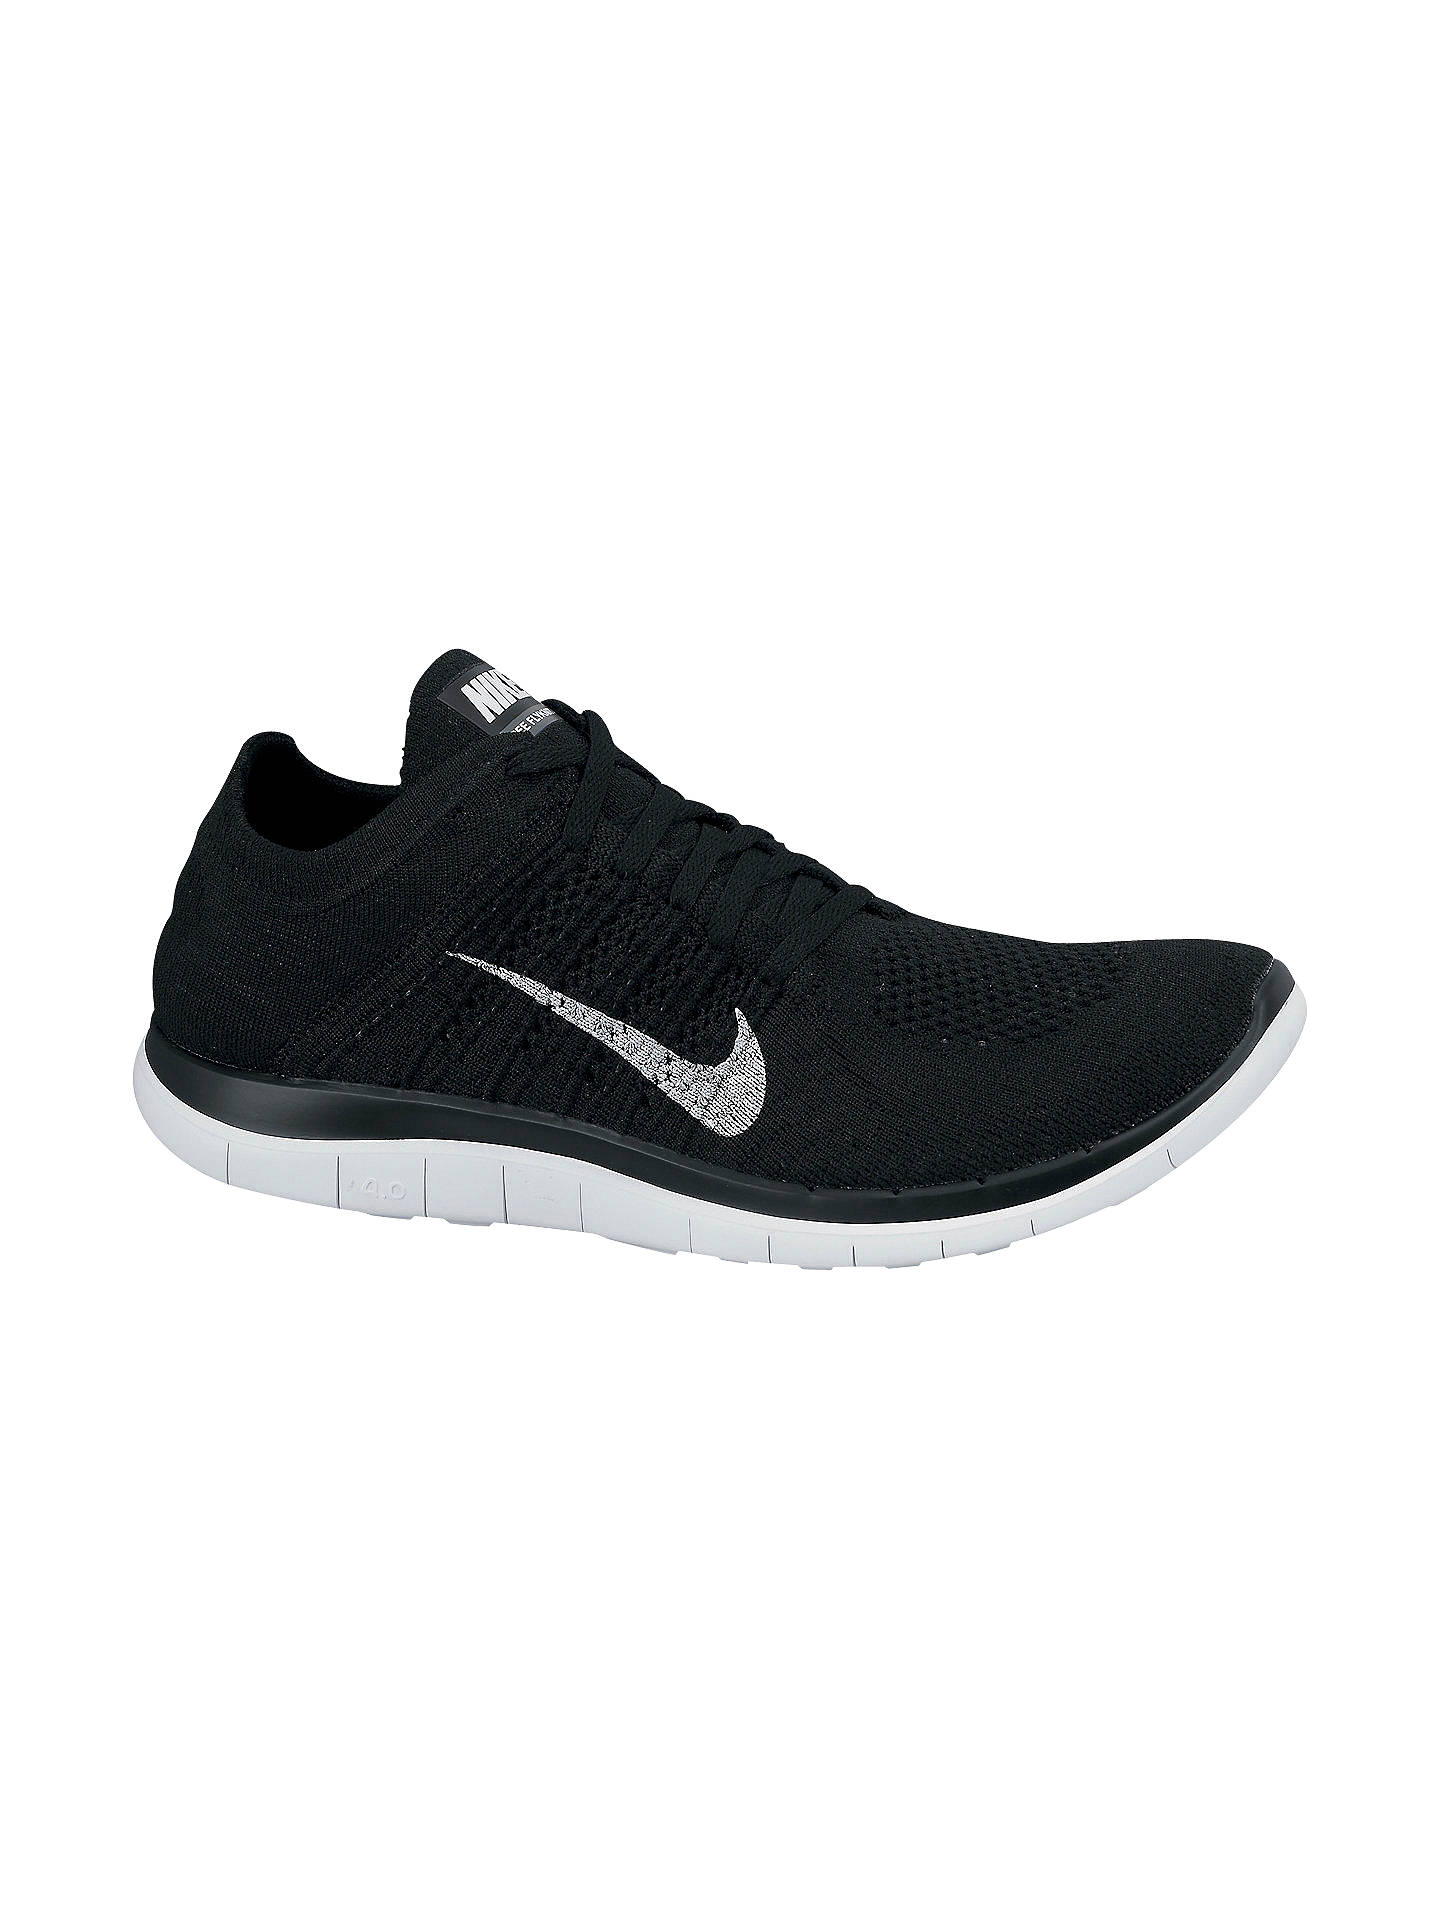 a54880f6eb9f Buy Nike Free 4.0 Flyknit Men s Running Shoes